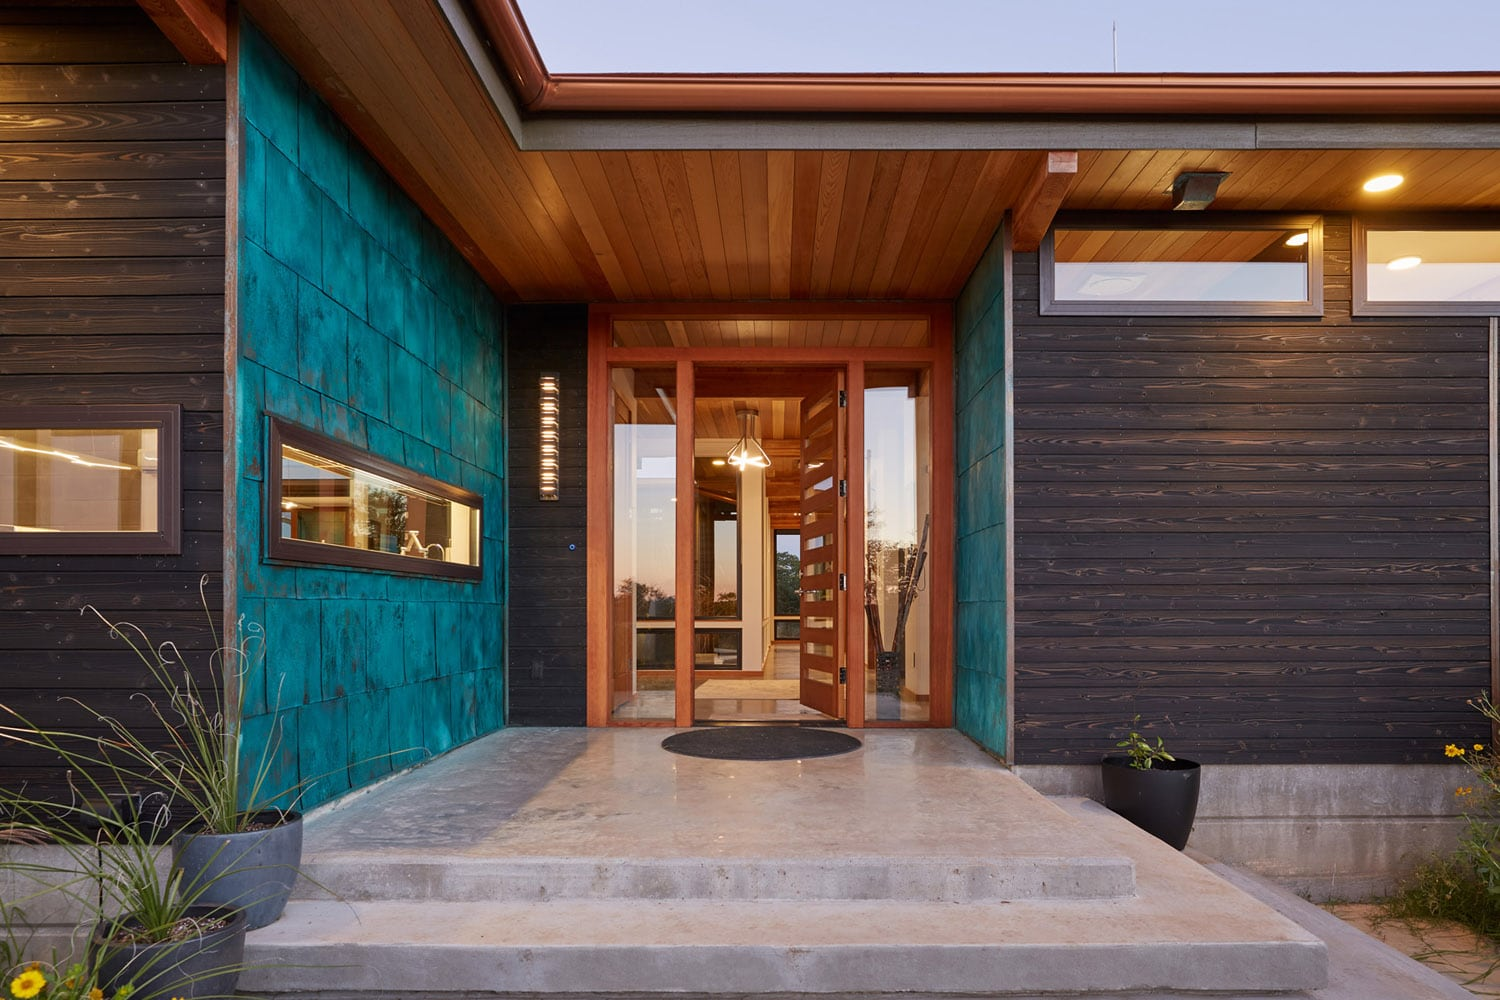 Porch Jeff Derebery's custom Lindal Hestia home in the Texas Hill Country, Johnson City